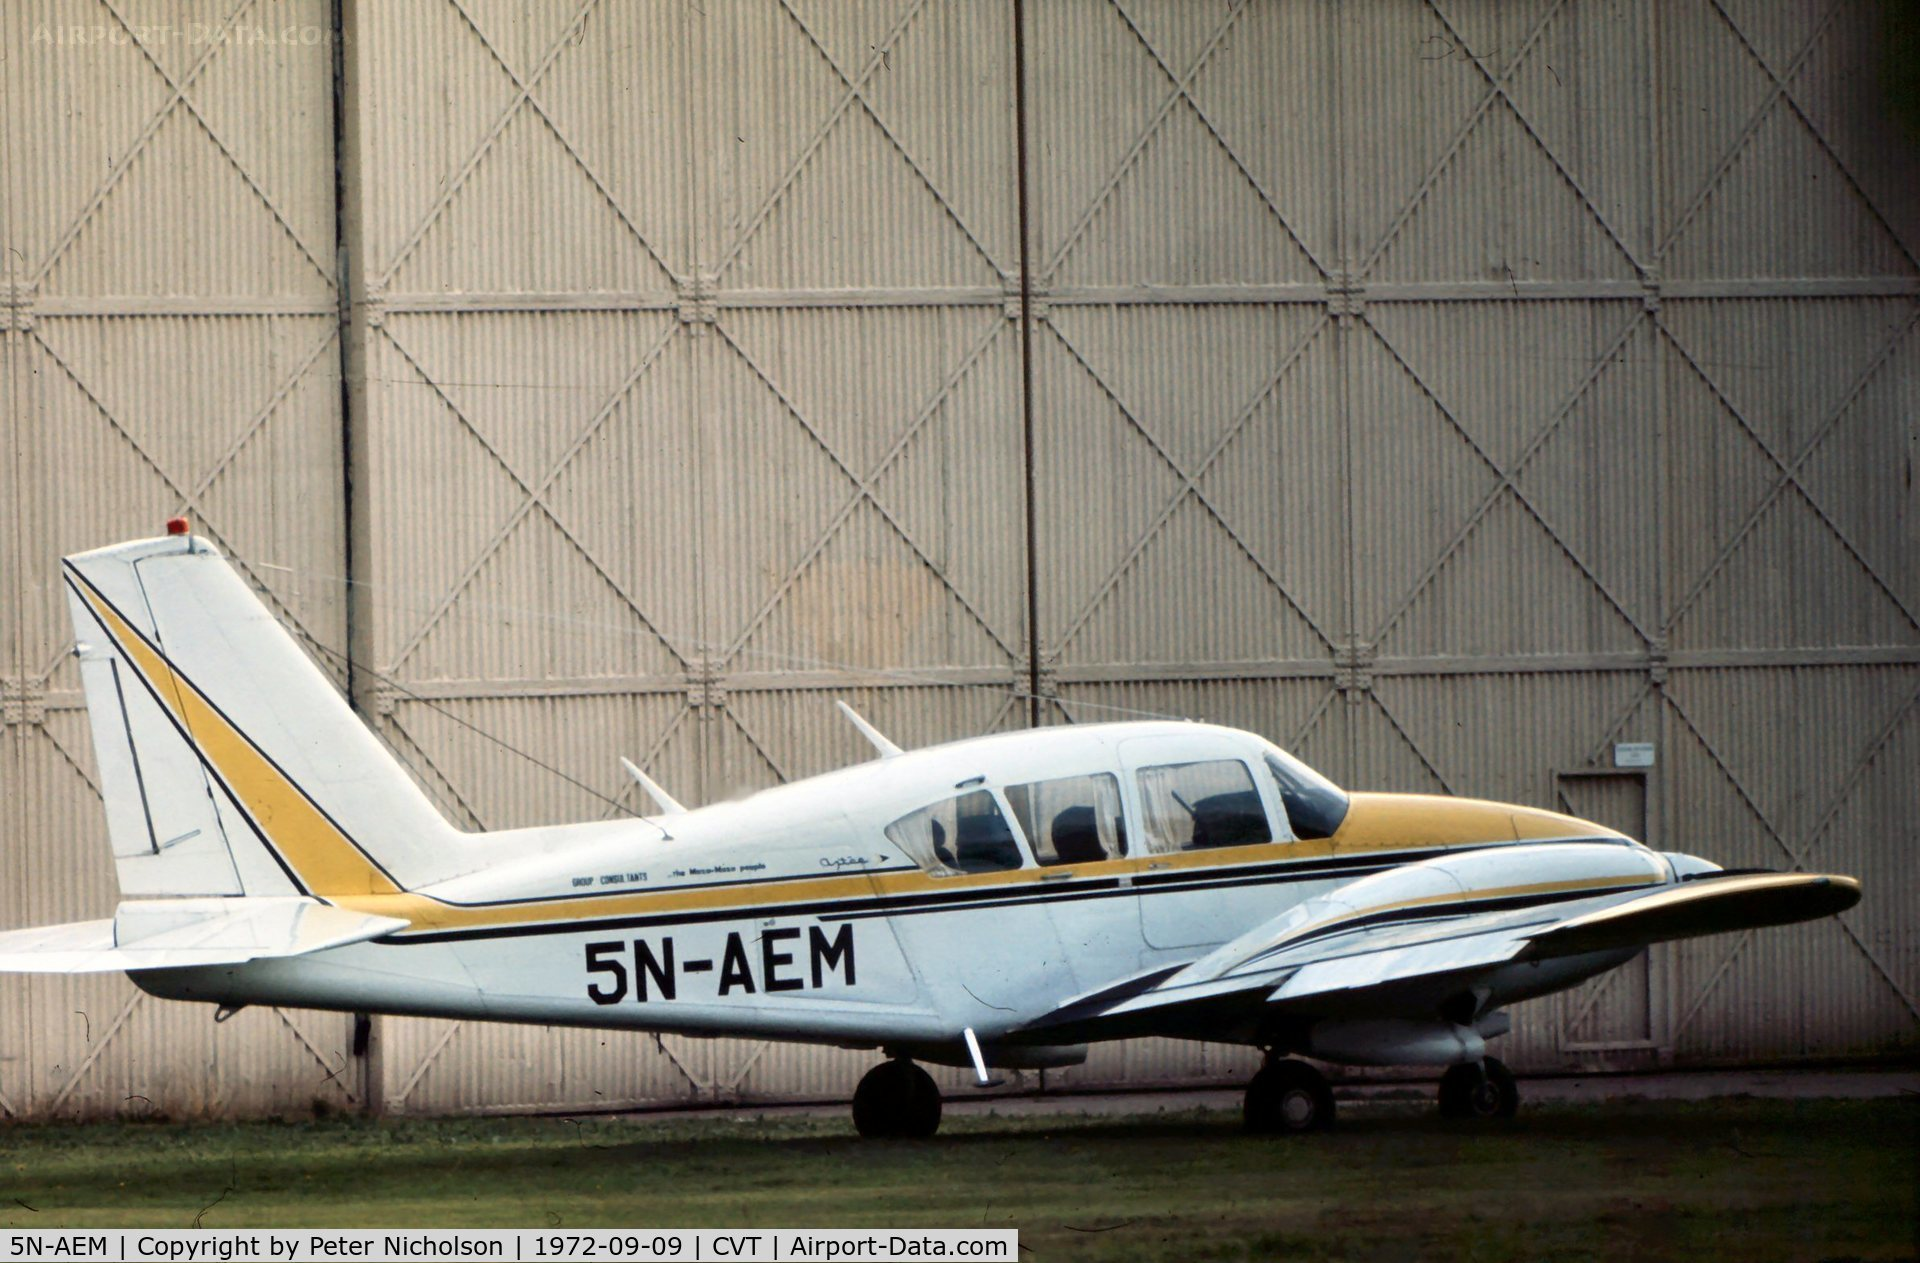 5N-AEM, 1970 Piper PA-23-250 Aztec C/N 274546, PA-23 Aztec 250 seen at Coventry Airport in September 1972 retained Nigerian markings until at least 1975.